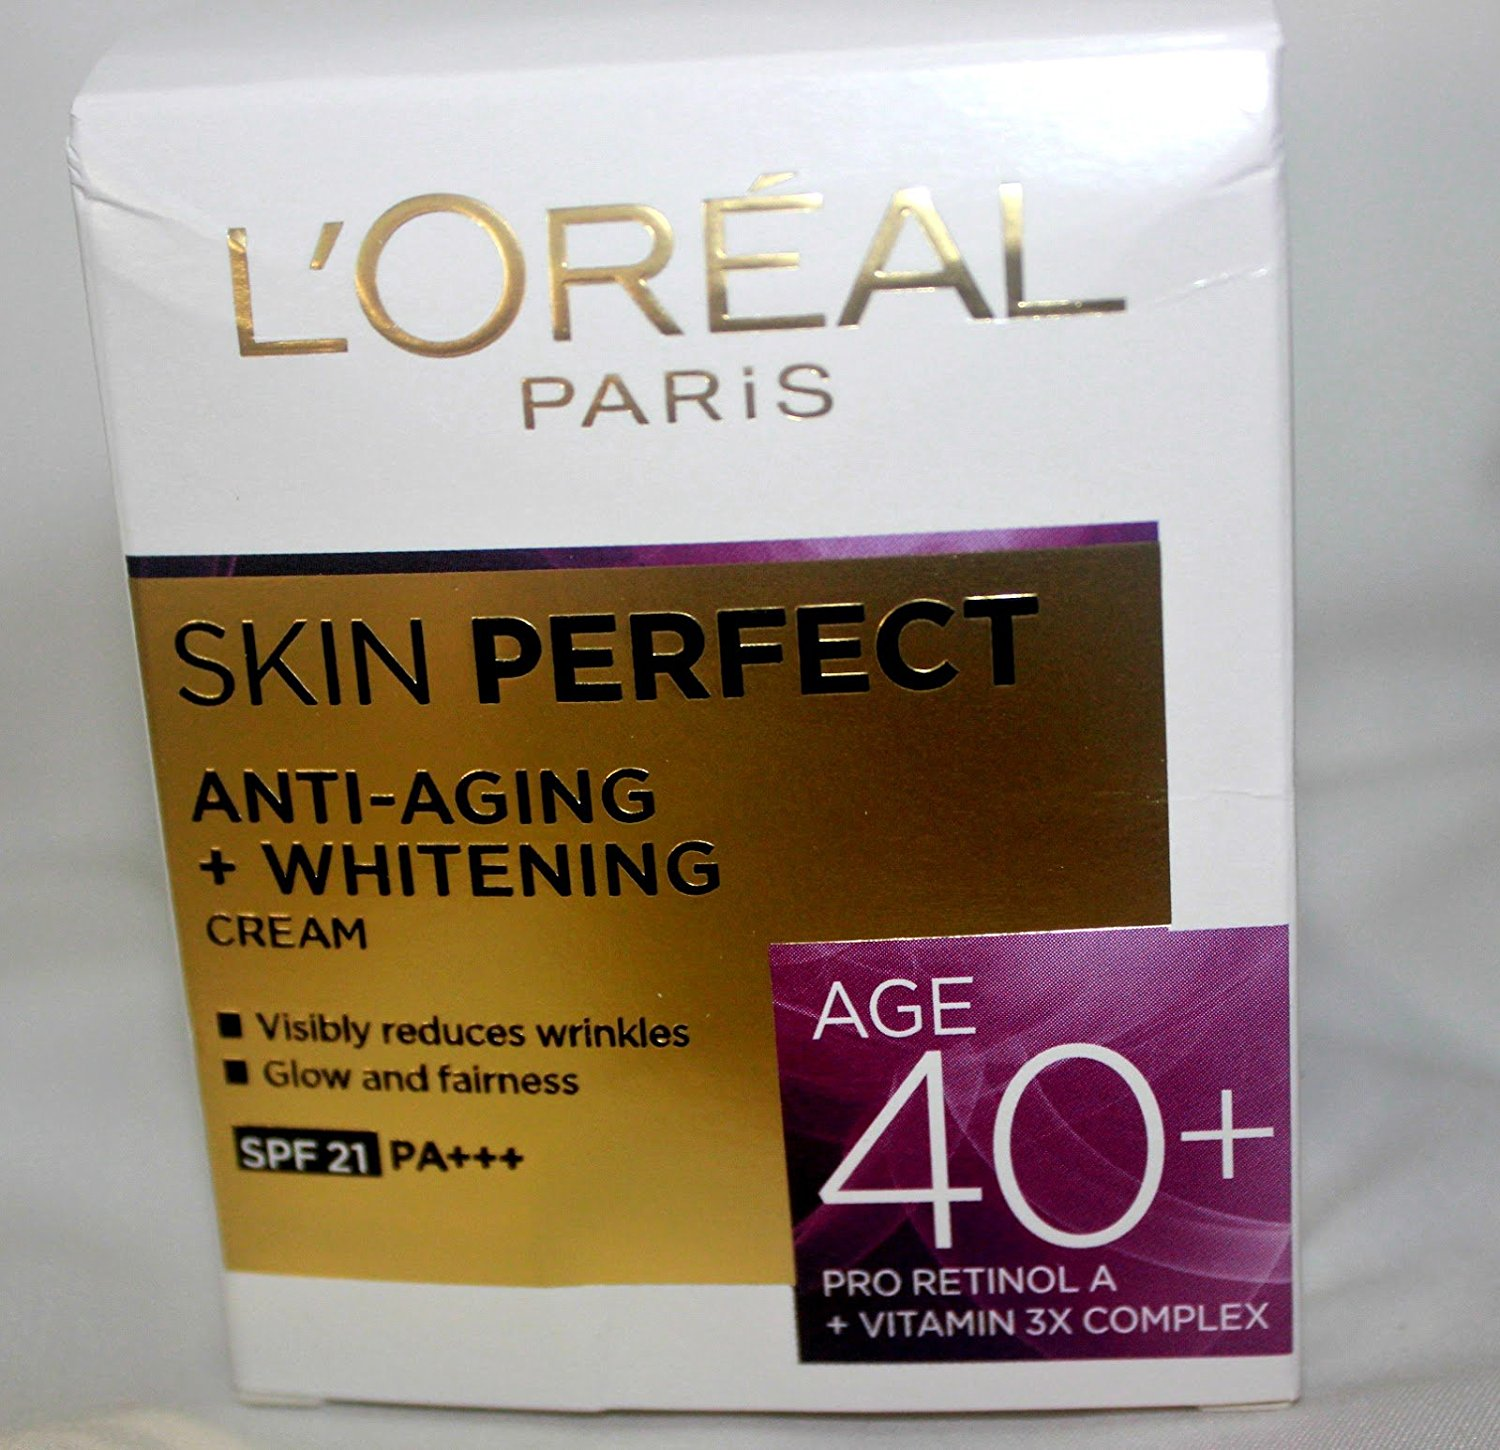 L'Oreal Paris Skin Perfect Age 40+ Day Cream